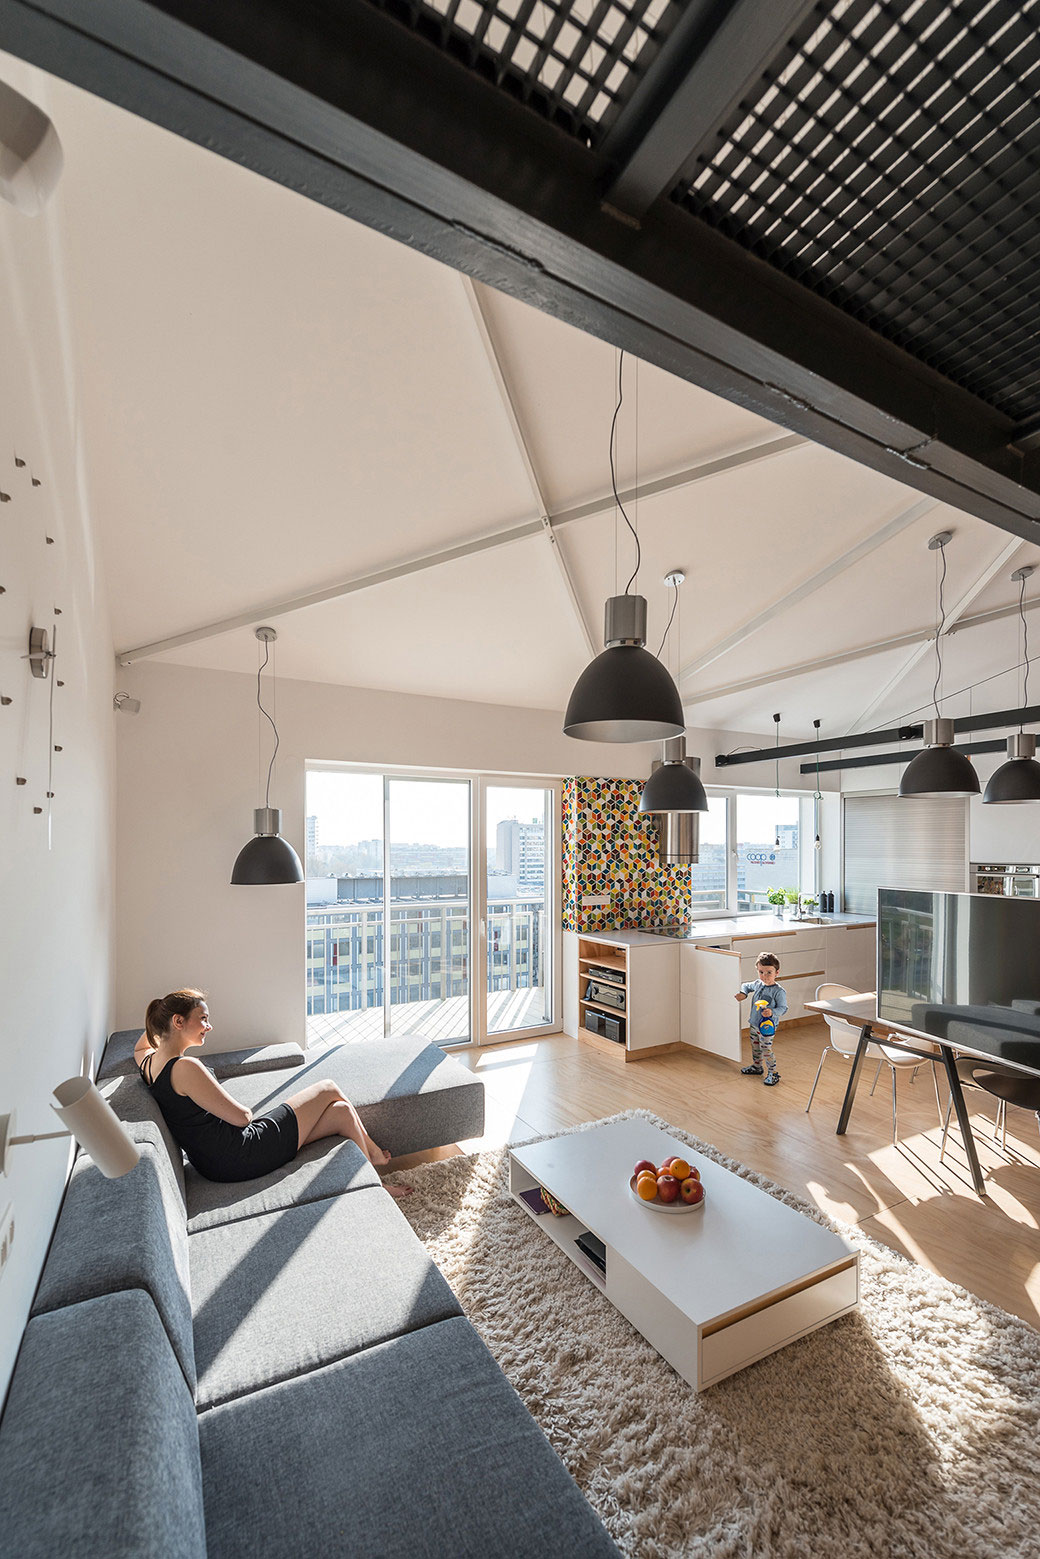 Loft Apartment in Superstructure by RULES architects (5)